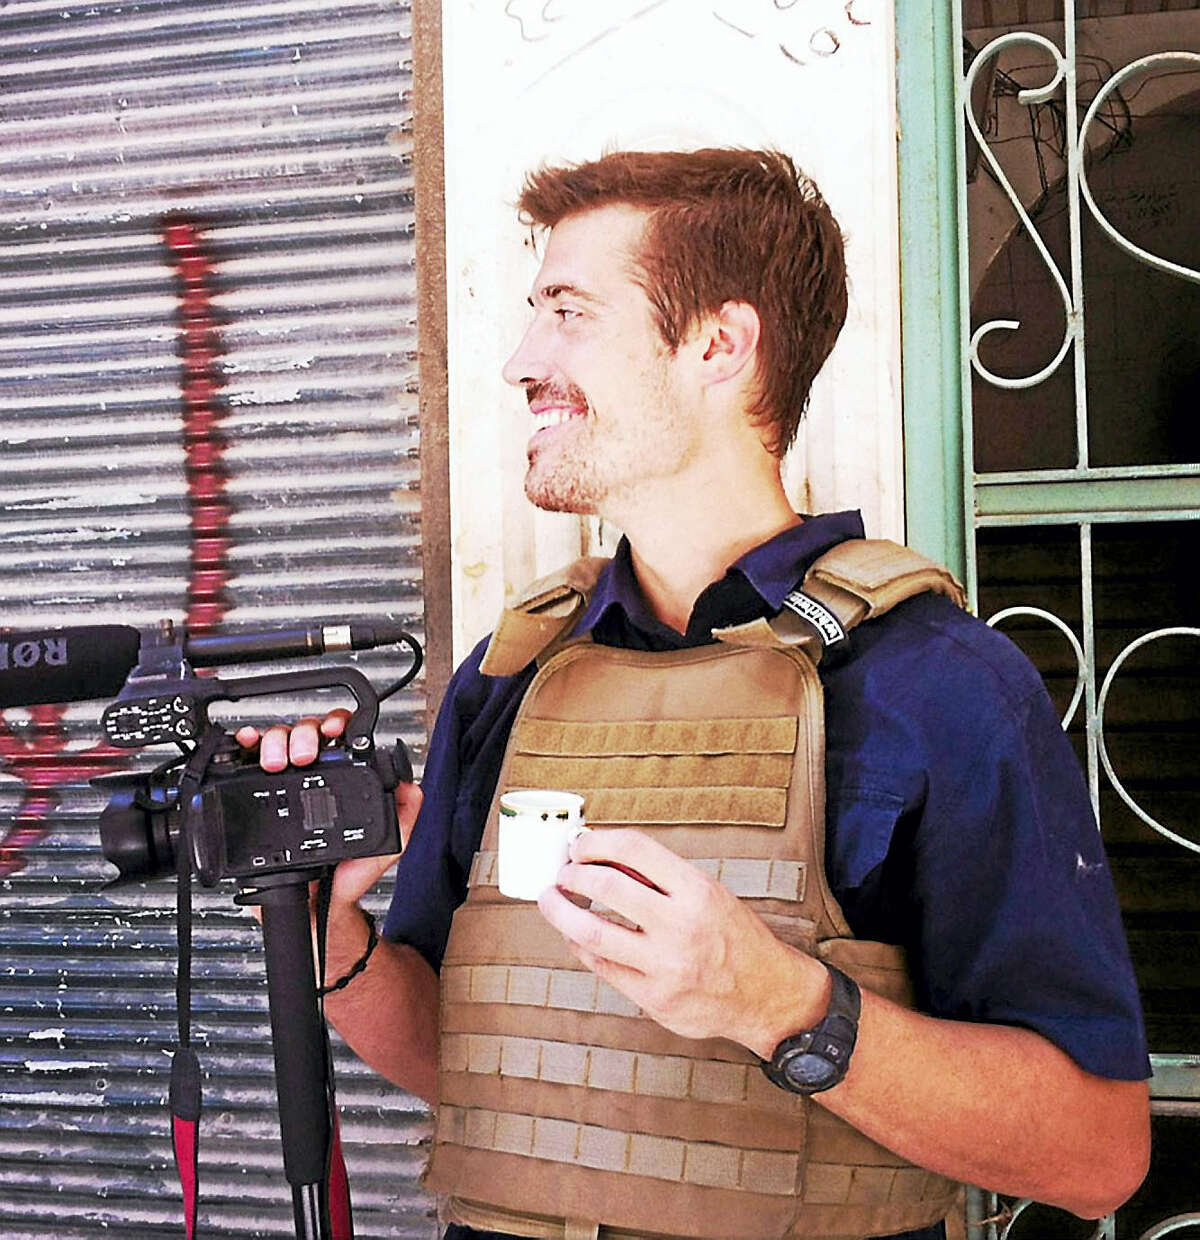 Journalist James Foley in Aleppo, Syria, in July, 2012.AP PROVIDES ACCESS TO THIS PUBLICLY DISTRIBUTED HANDOUT PHOTO FROM FREEJAMESFOLEY.ORG TO BE USEDS FOR EDITORIAL PURPOSES ONLY NO SALES